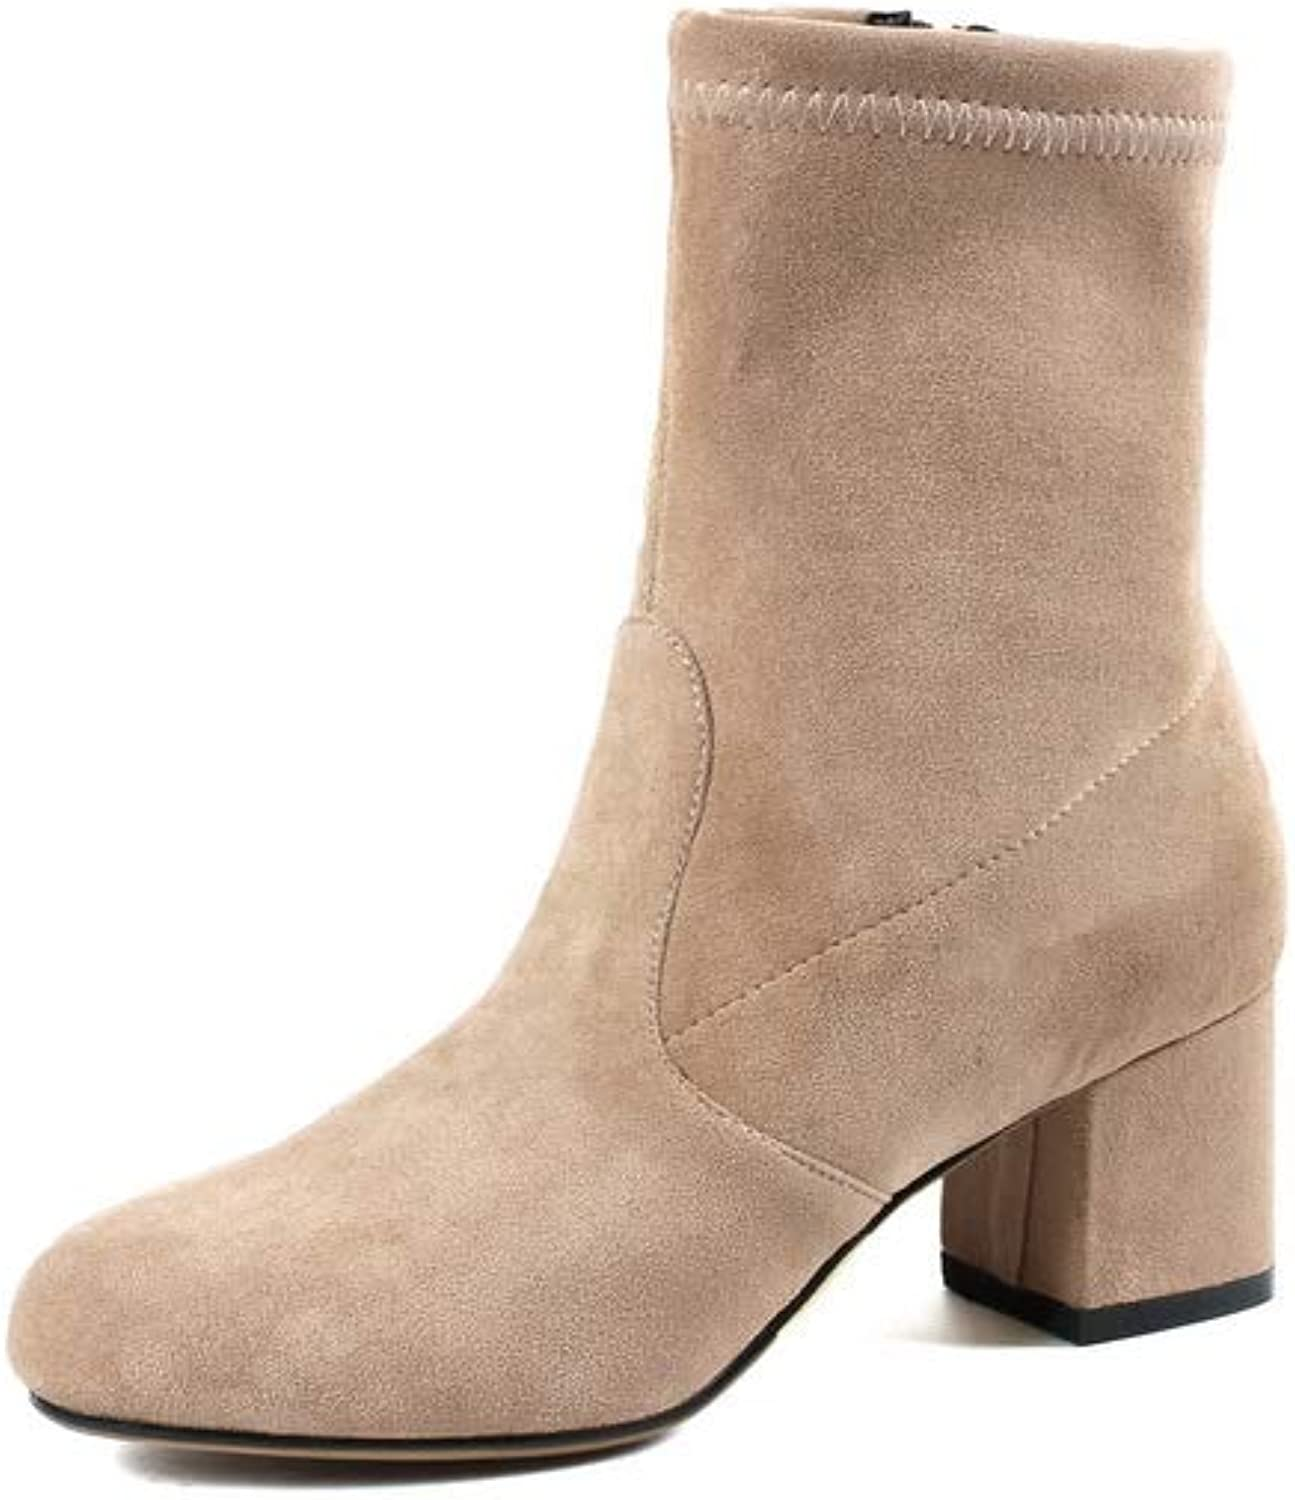 1TO9 Womens Casual Solid Bucket-Style Urethane Boots MNS03037